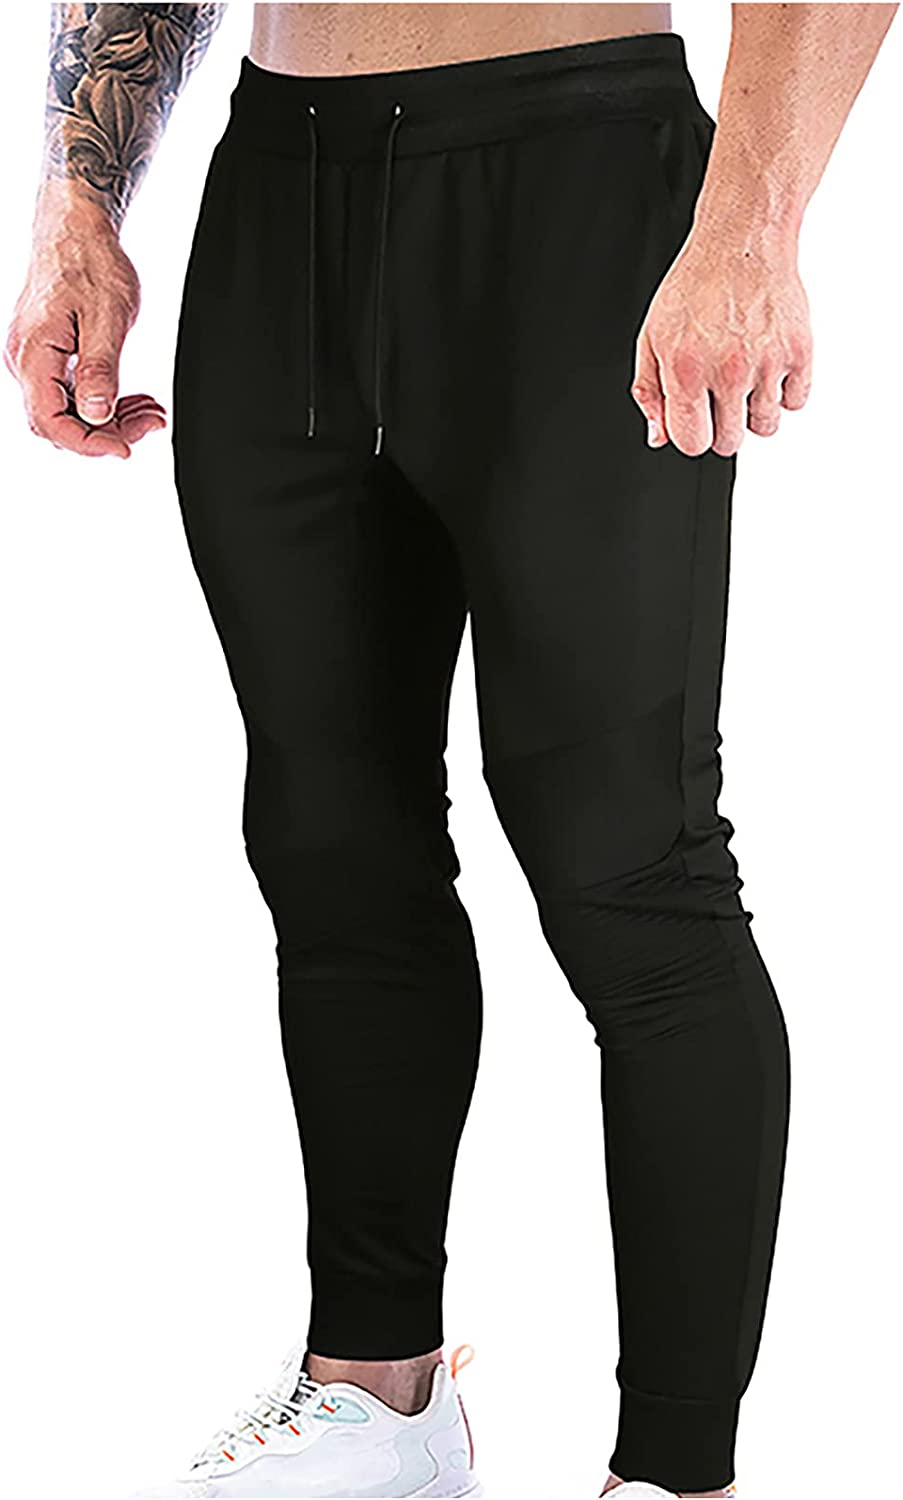 Men's Joggers Sweatpants with Zipper Pockets S Drawstring Quantity Max 72% OFF limited Lounge